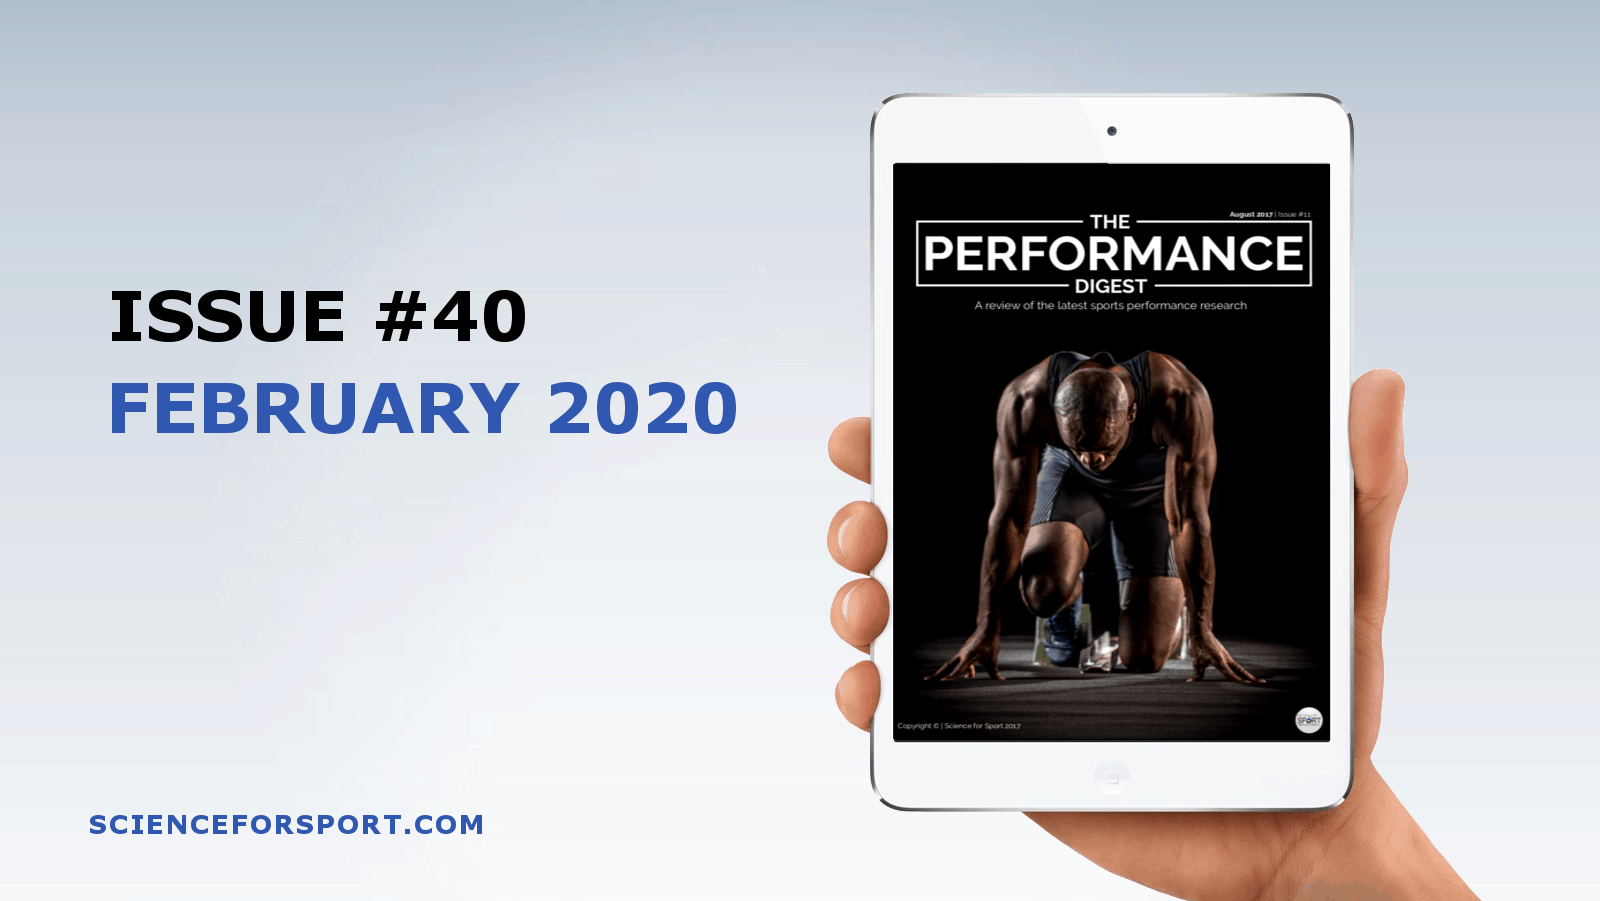 Performance Digest - February 20 (Issue #40)